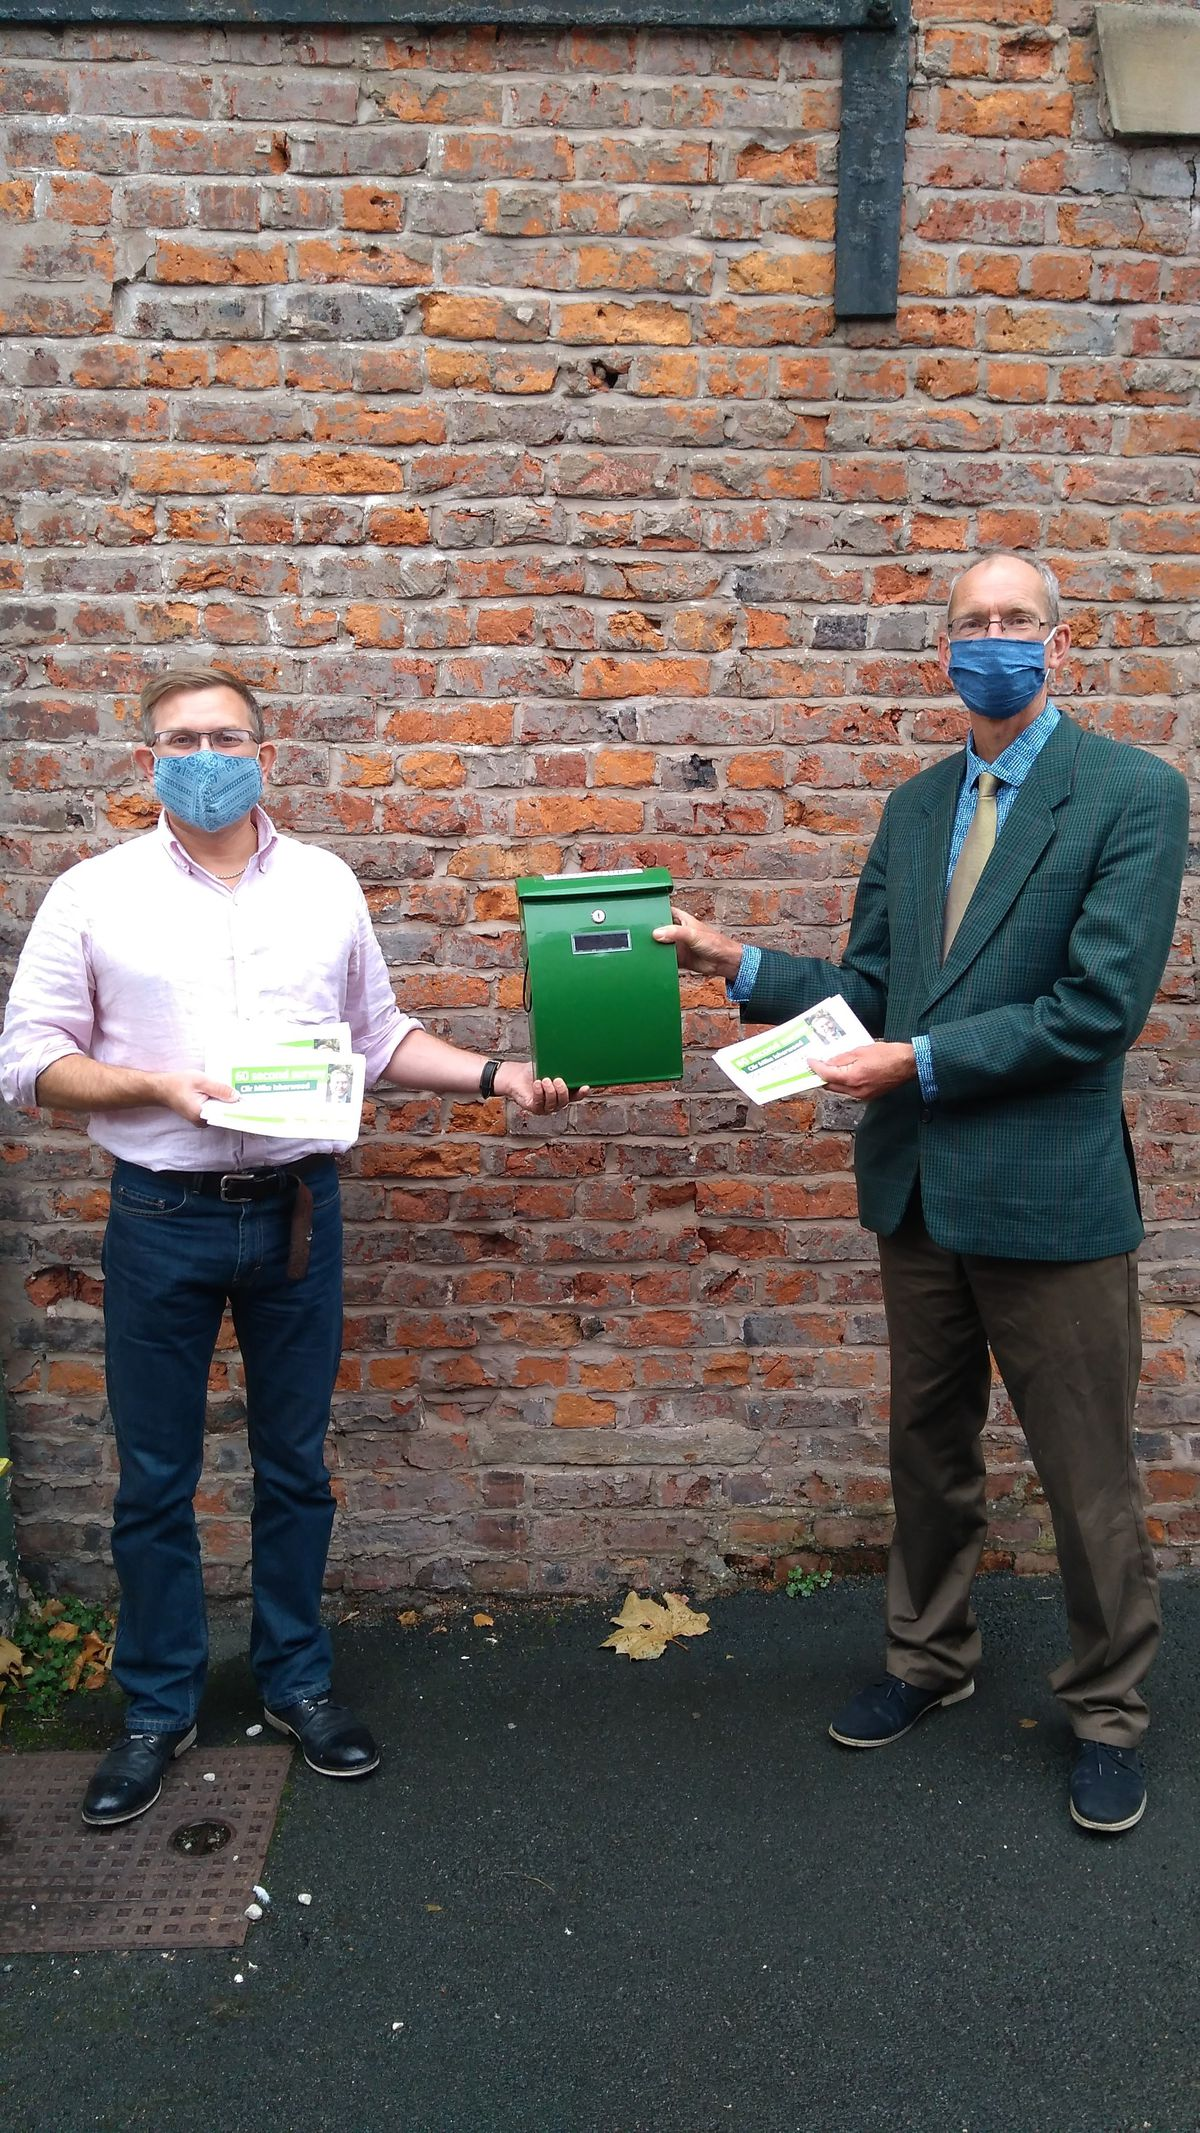 Councillor Mike Isherwood and Councillor Duncan Kerr have launched the surveys